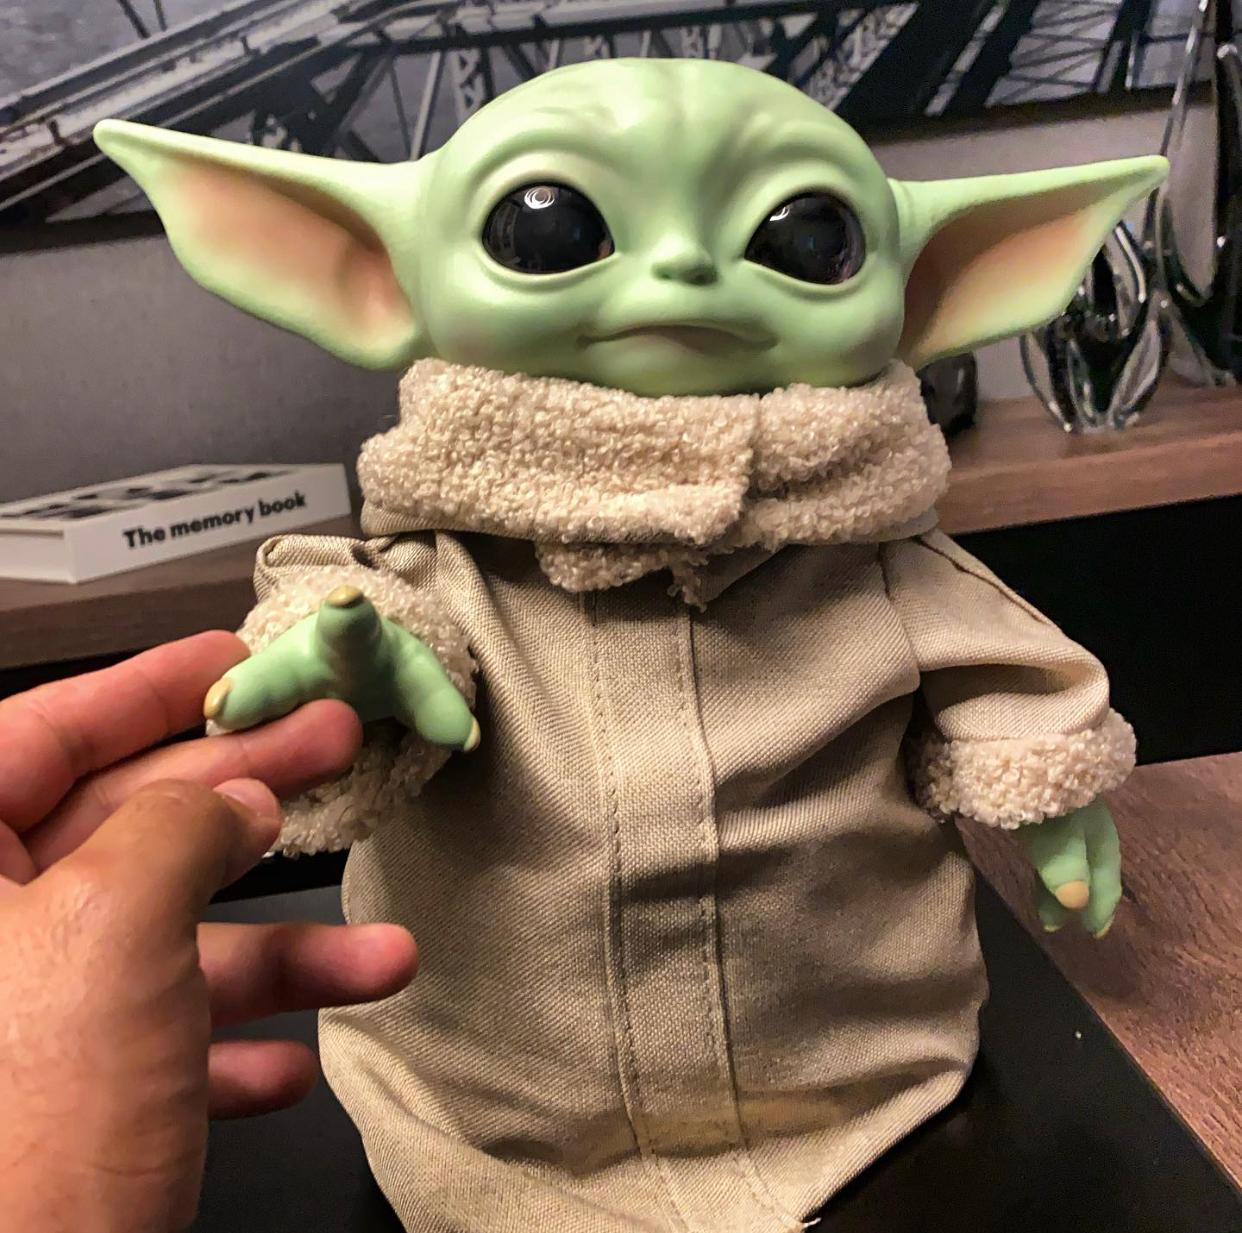 Boneco: Grogu ''Baby Yoda'' (The Child): The Mandalorian (Star Wars): 30cm (Life Size) Disney+ - Mattel